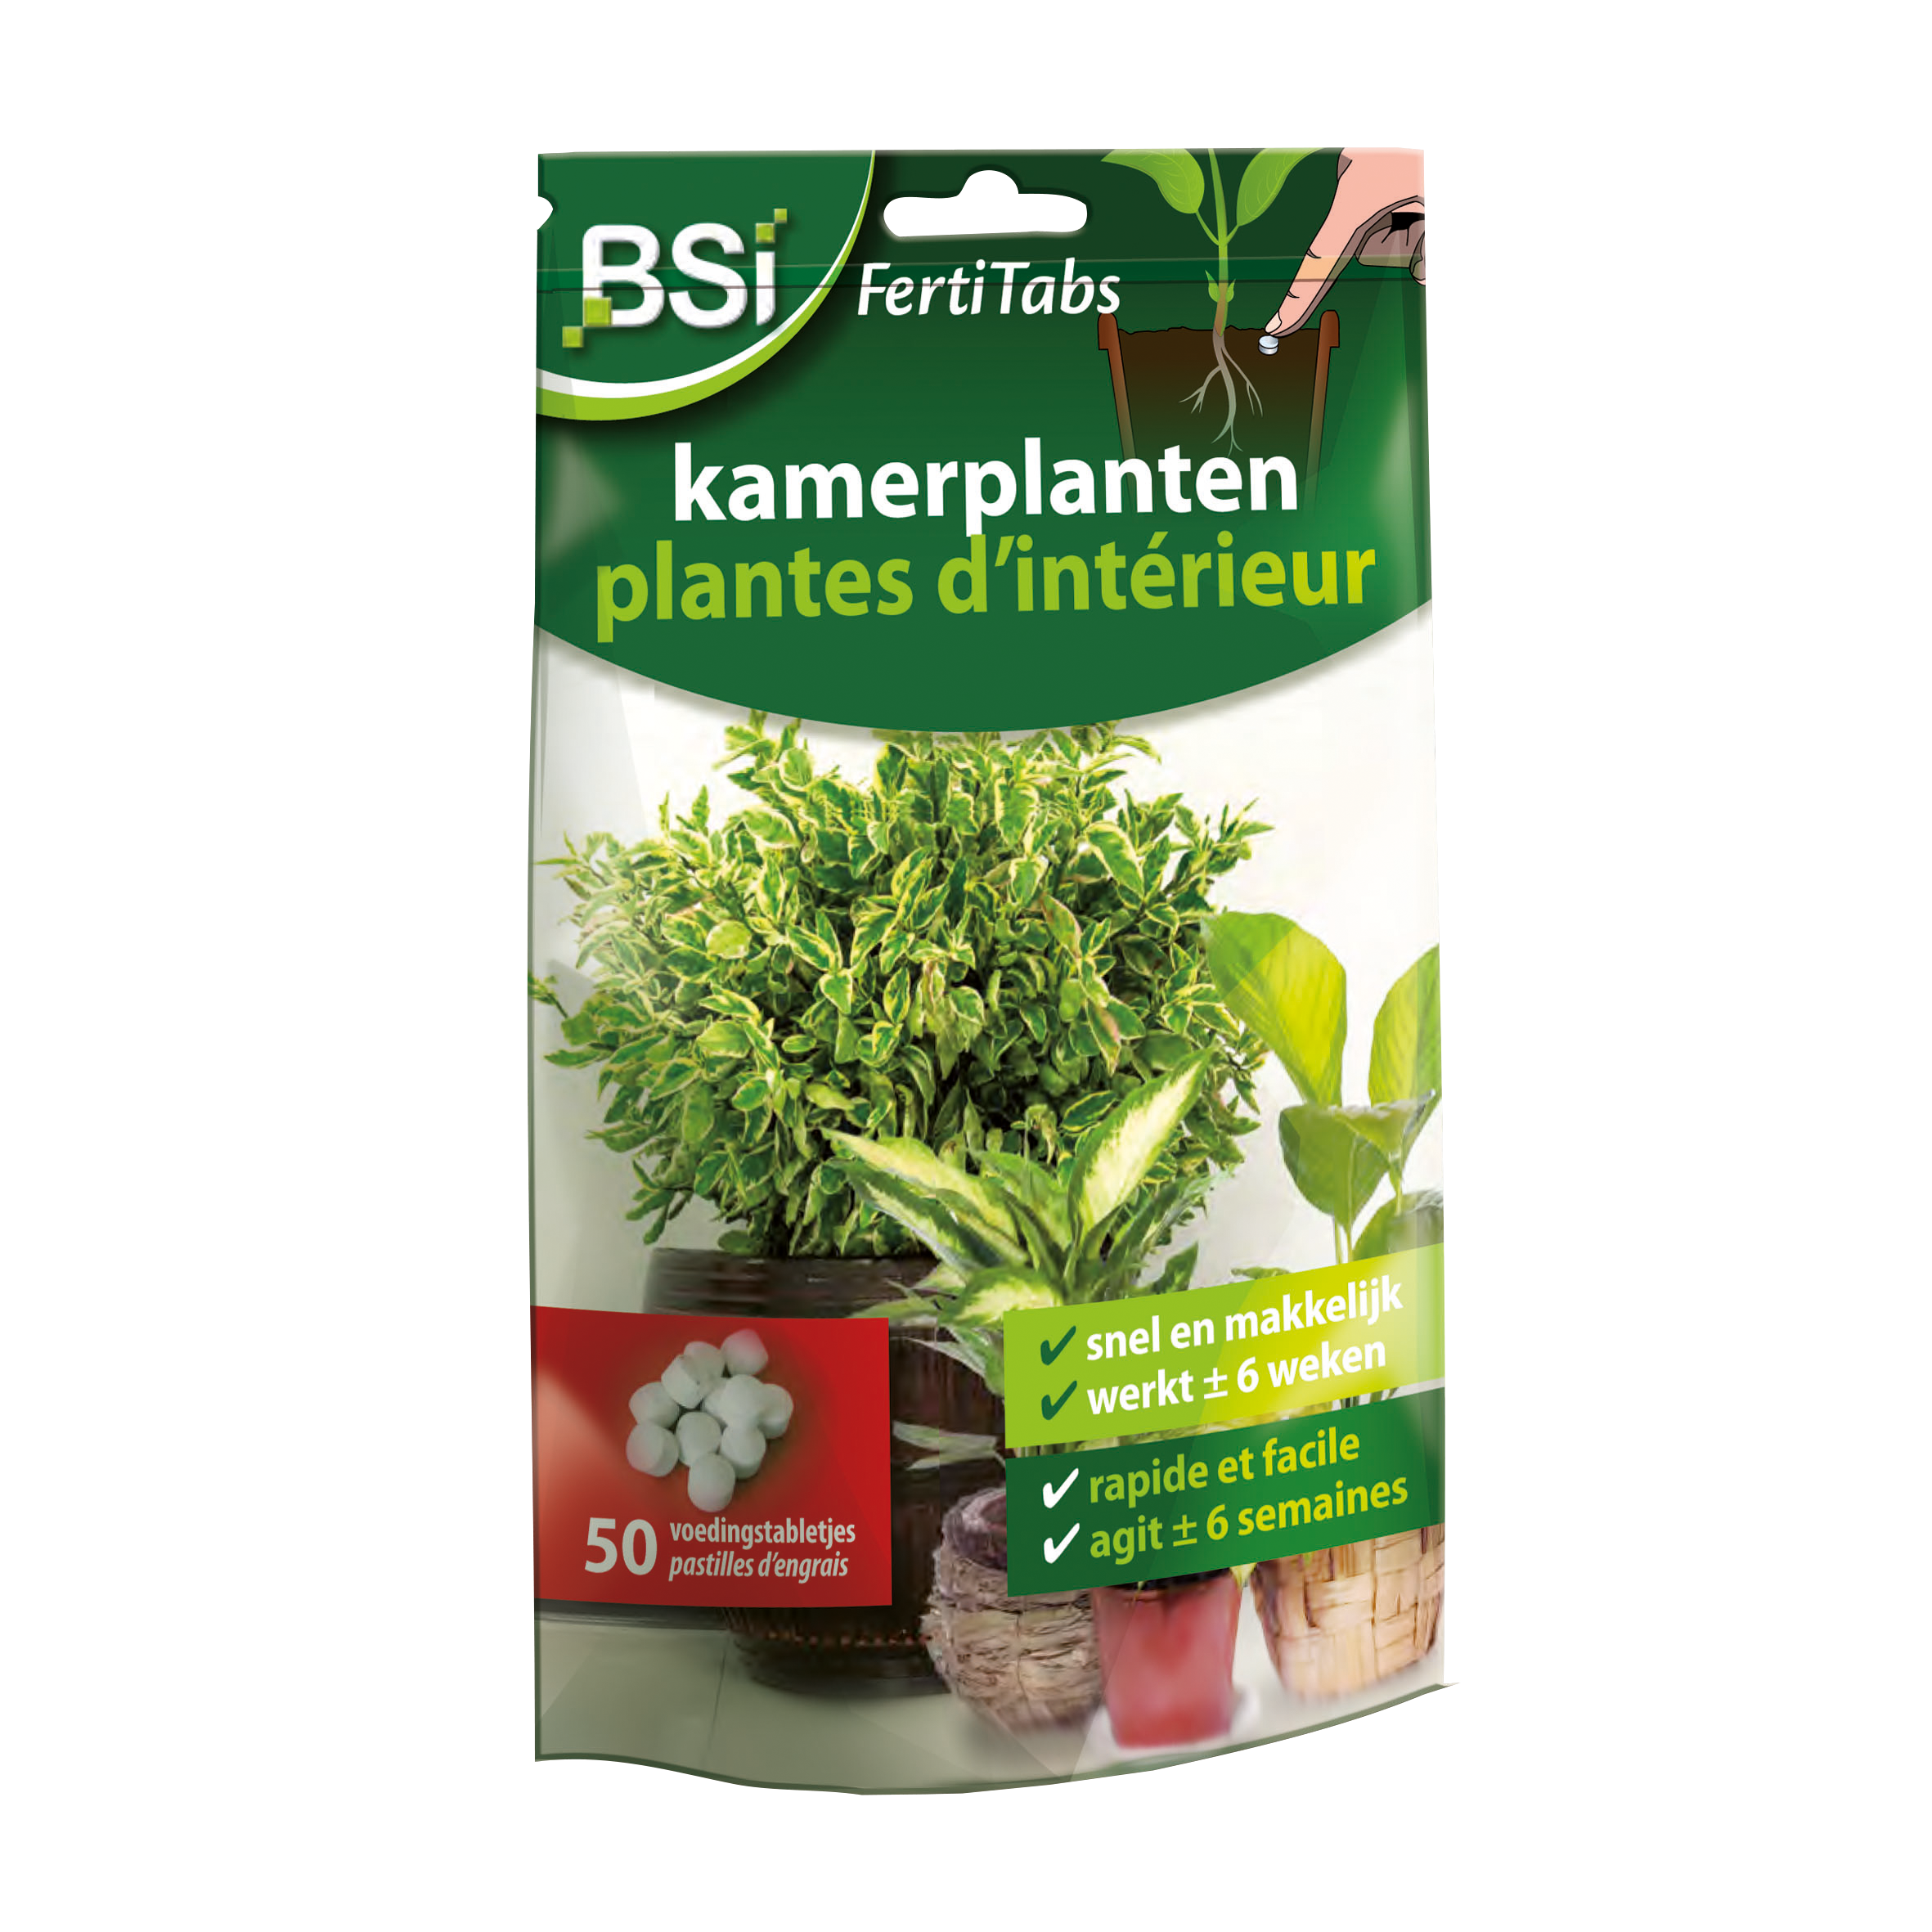 Fertitabs Kamerplanten 40 g image